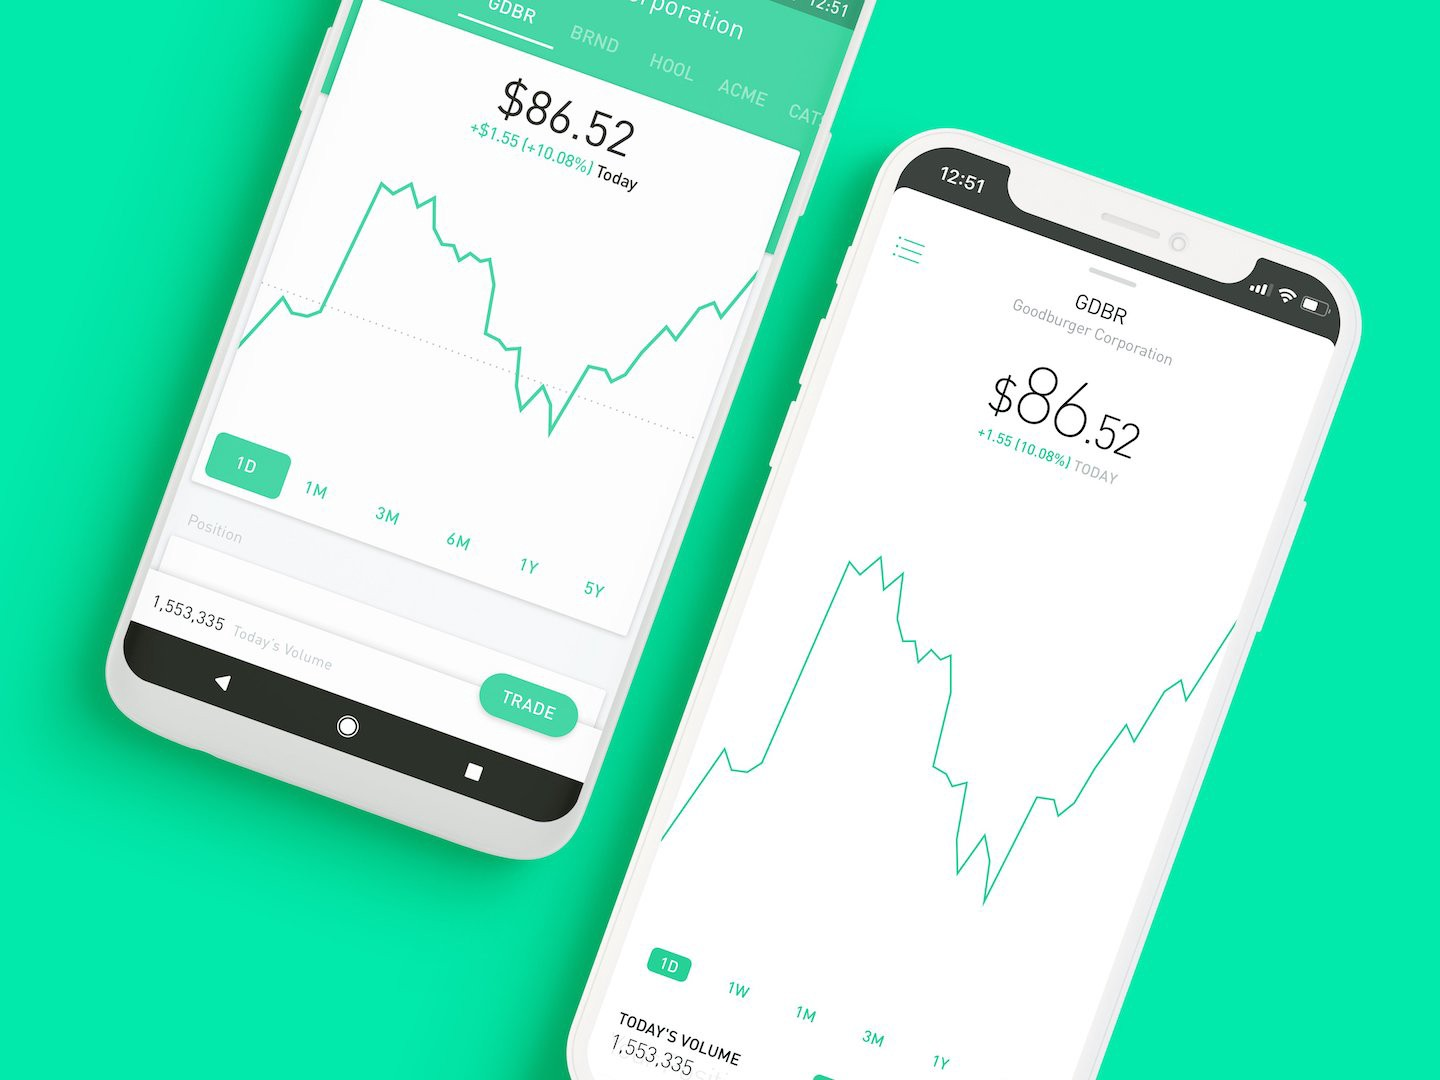 How To Cash Out Dividends On Robinhood